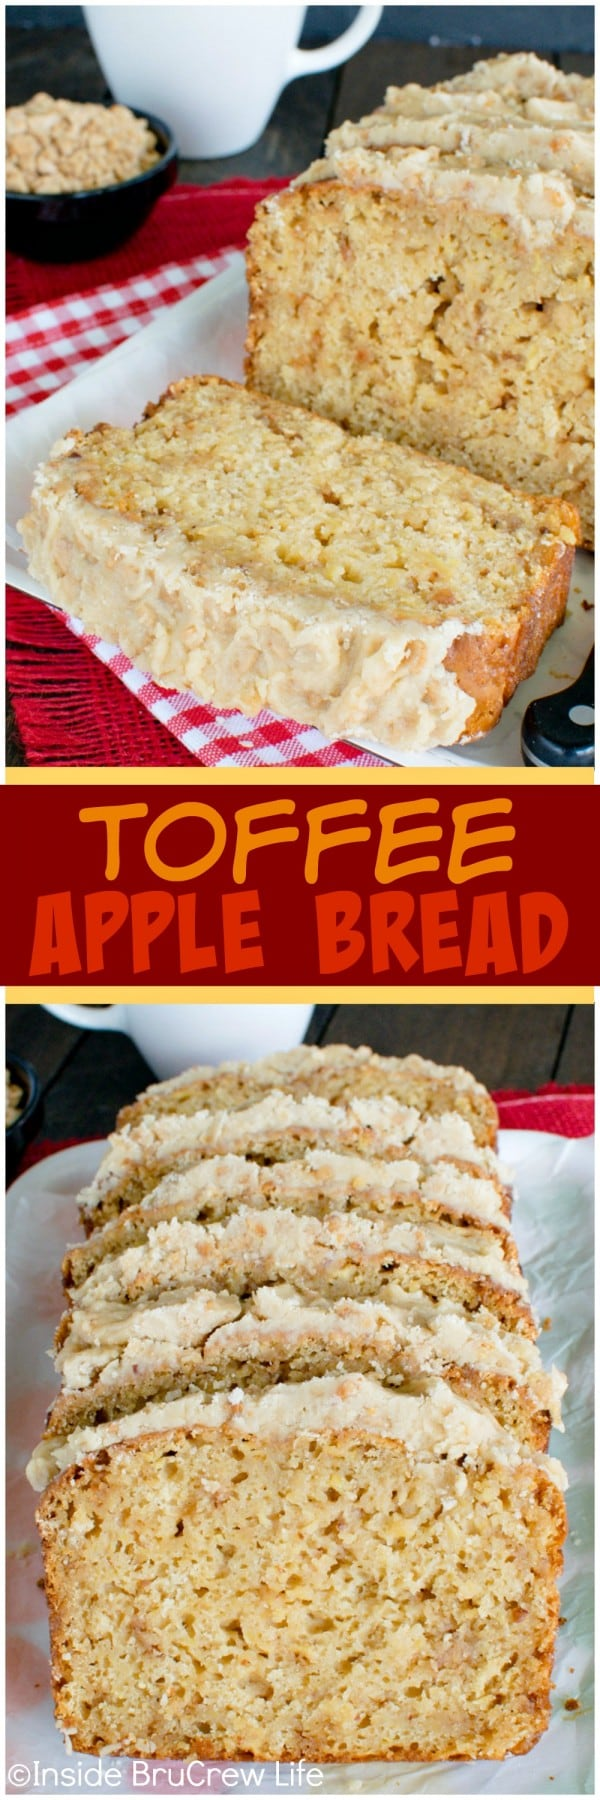 Toffee Apple Bread - shredded apples, toffee bits, and brown sugar frosting makes this sweet bread recipe disappear!